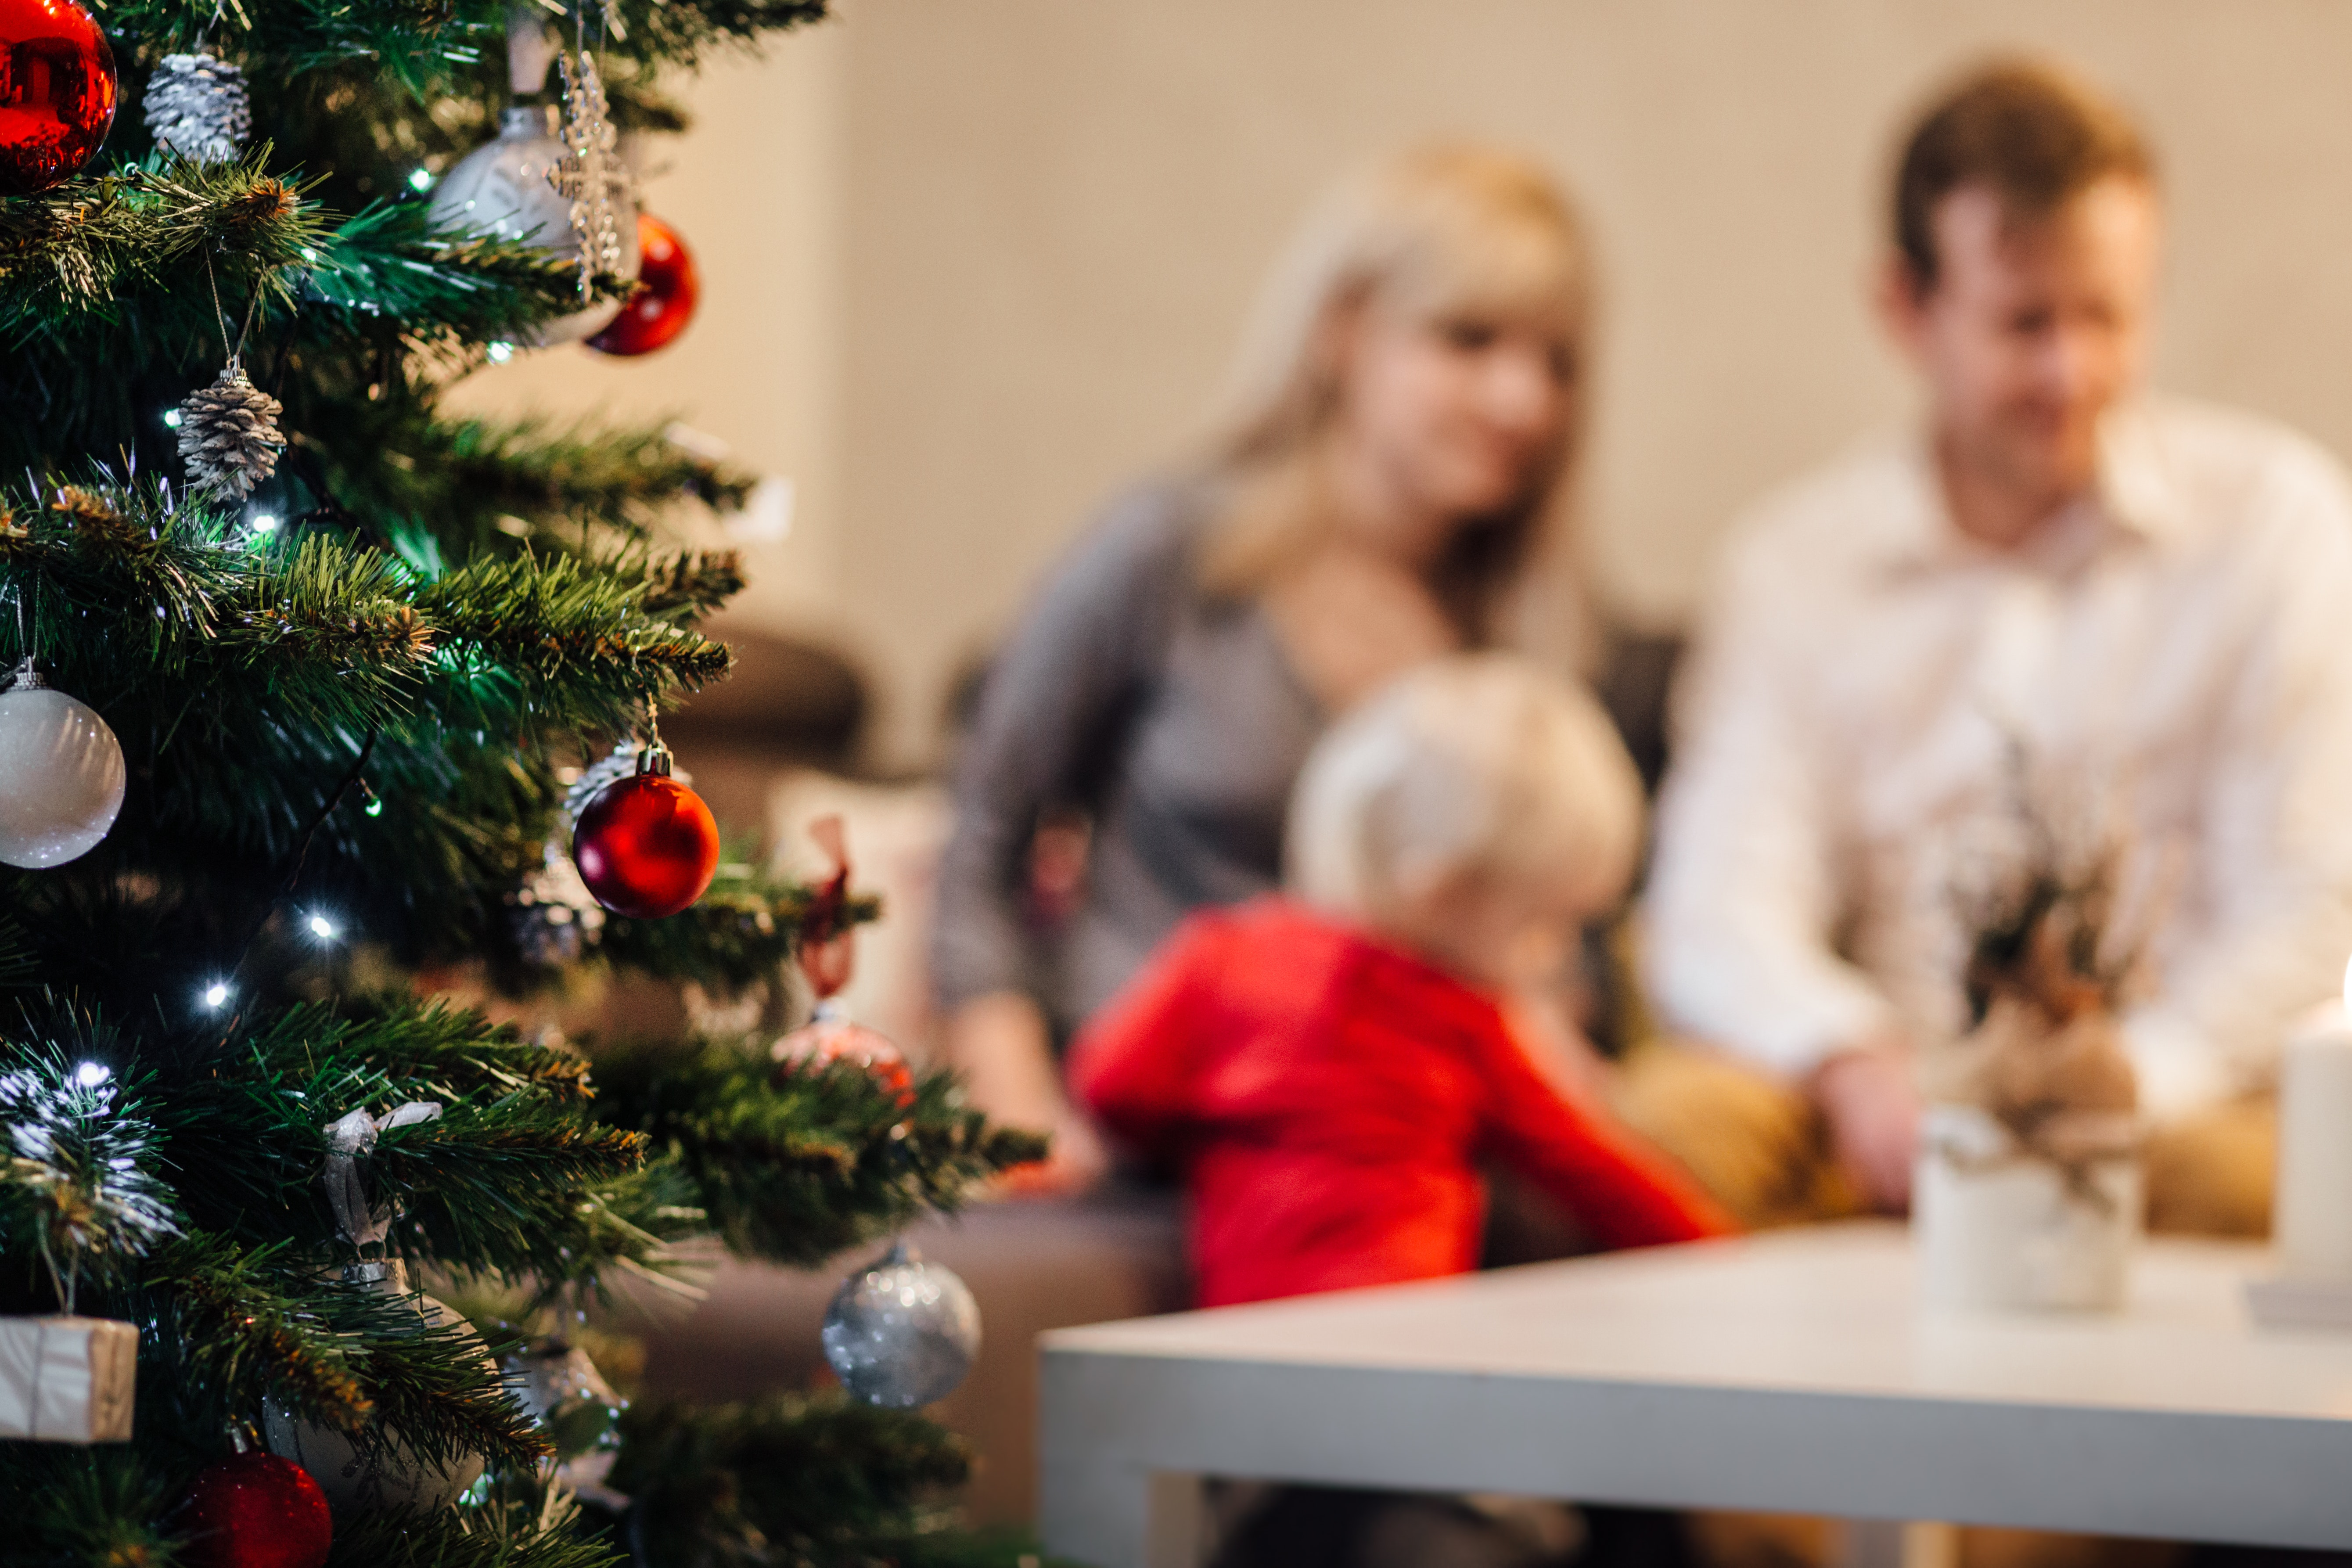 6 Ways to Support Grieving Friends and Family During the Holidays